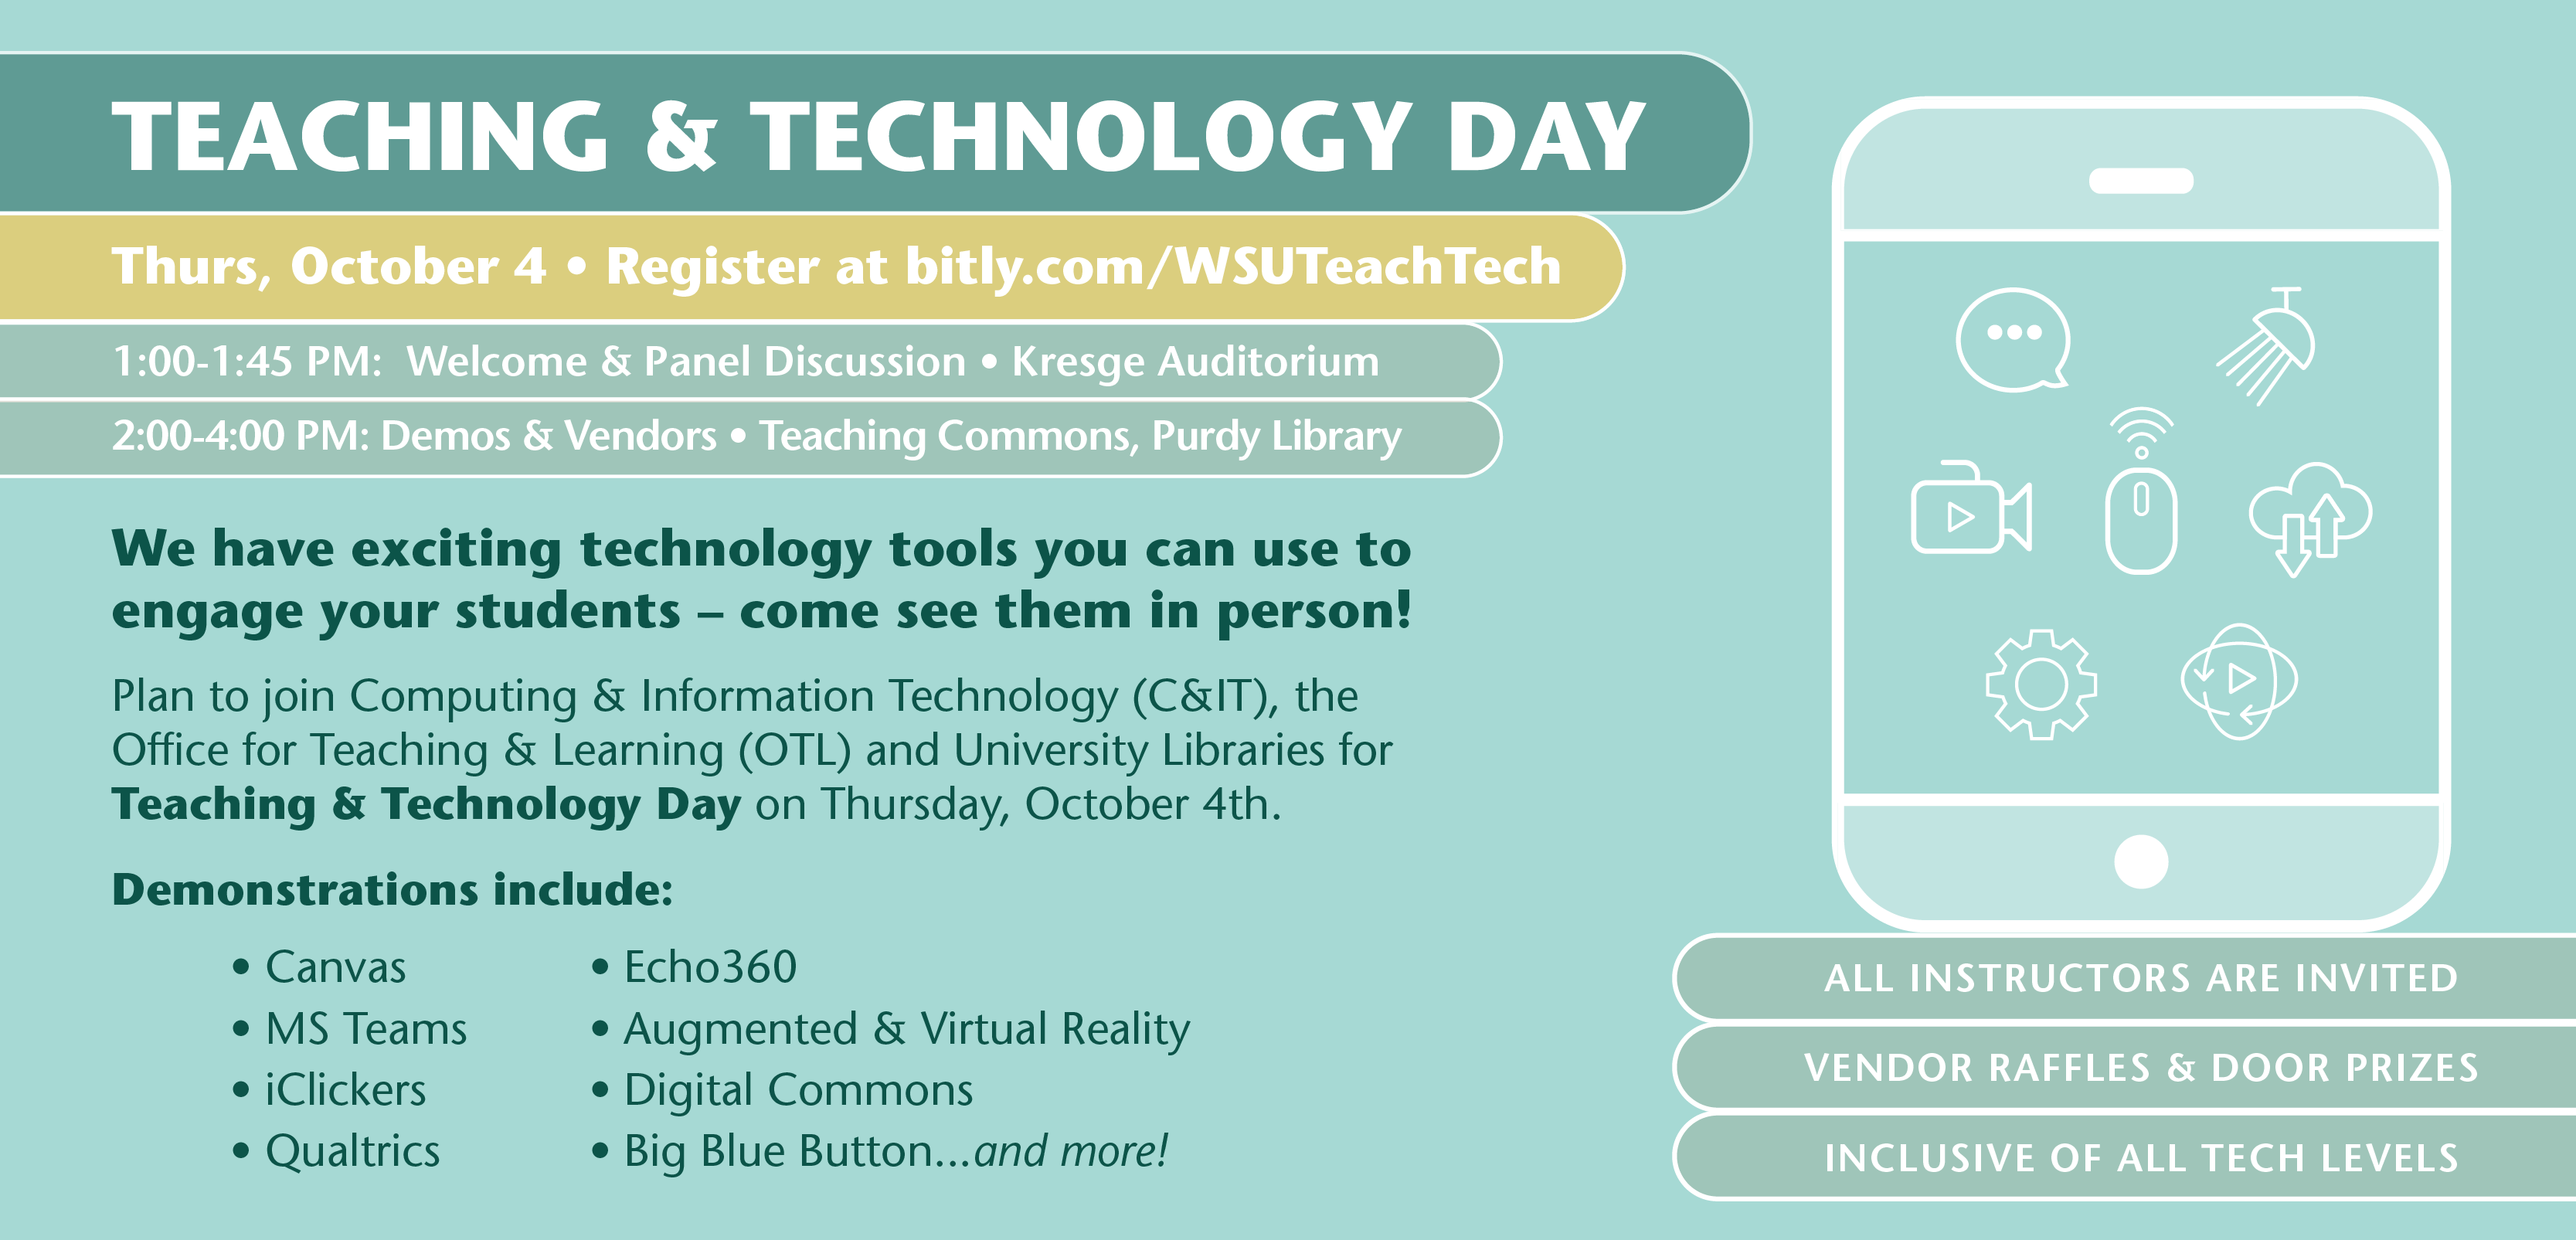 Wayne State Teaching & Technology Day 2018